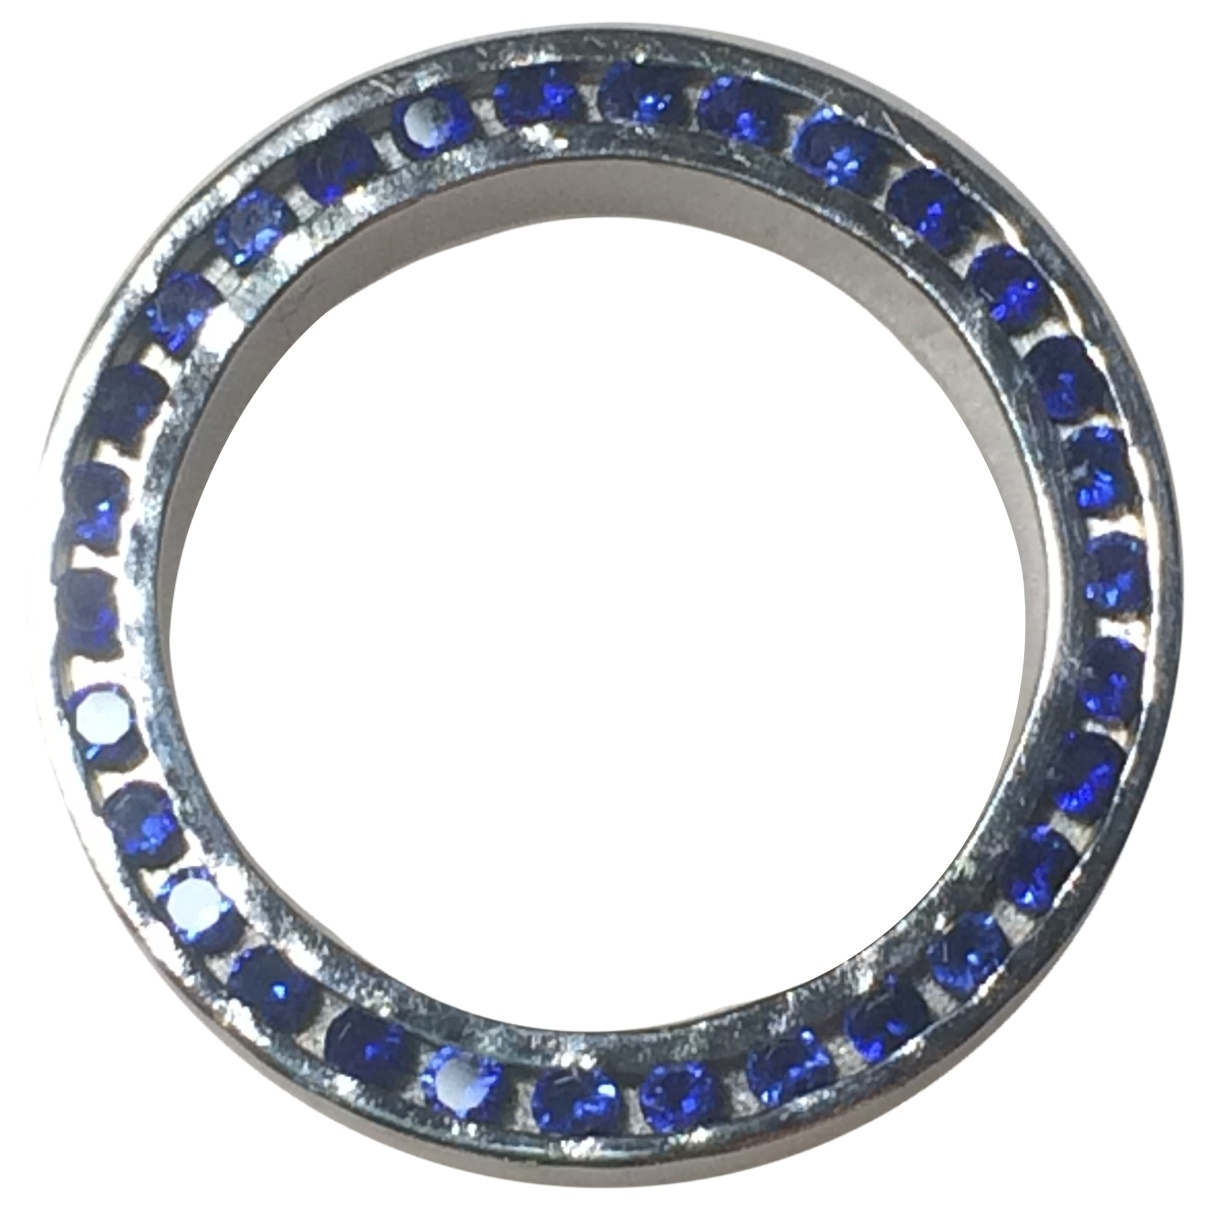 Non Signe / Unsigned Saphir Ring in  Weiss Weissgold